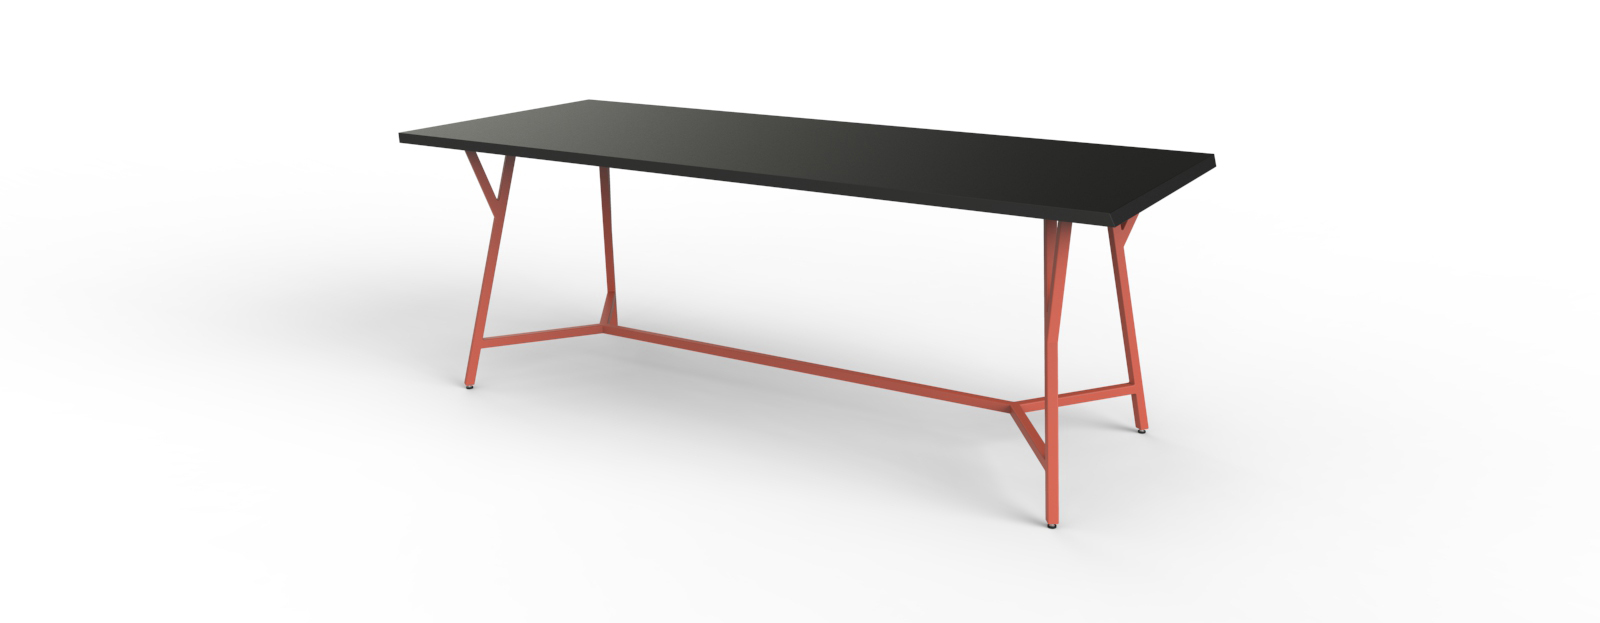 YV table costum 3